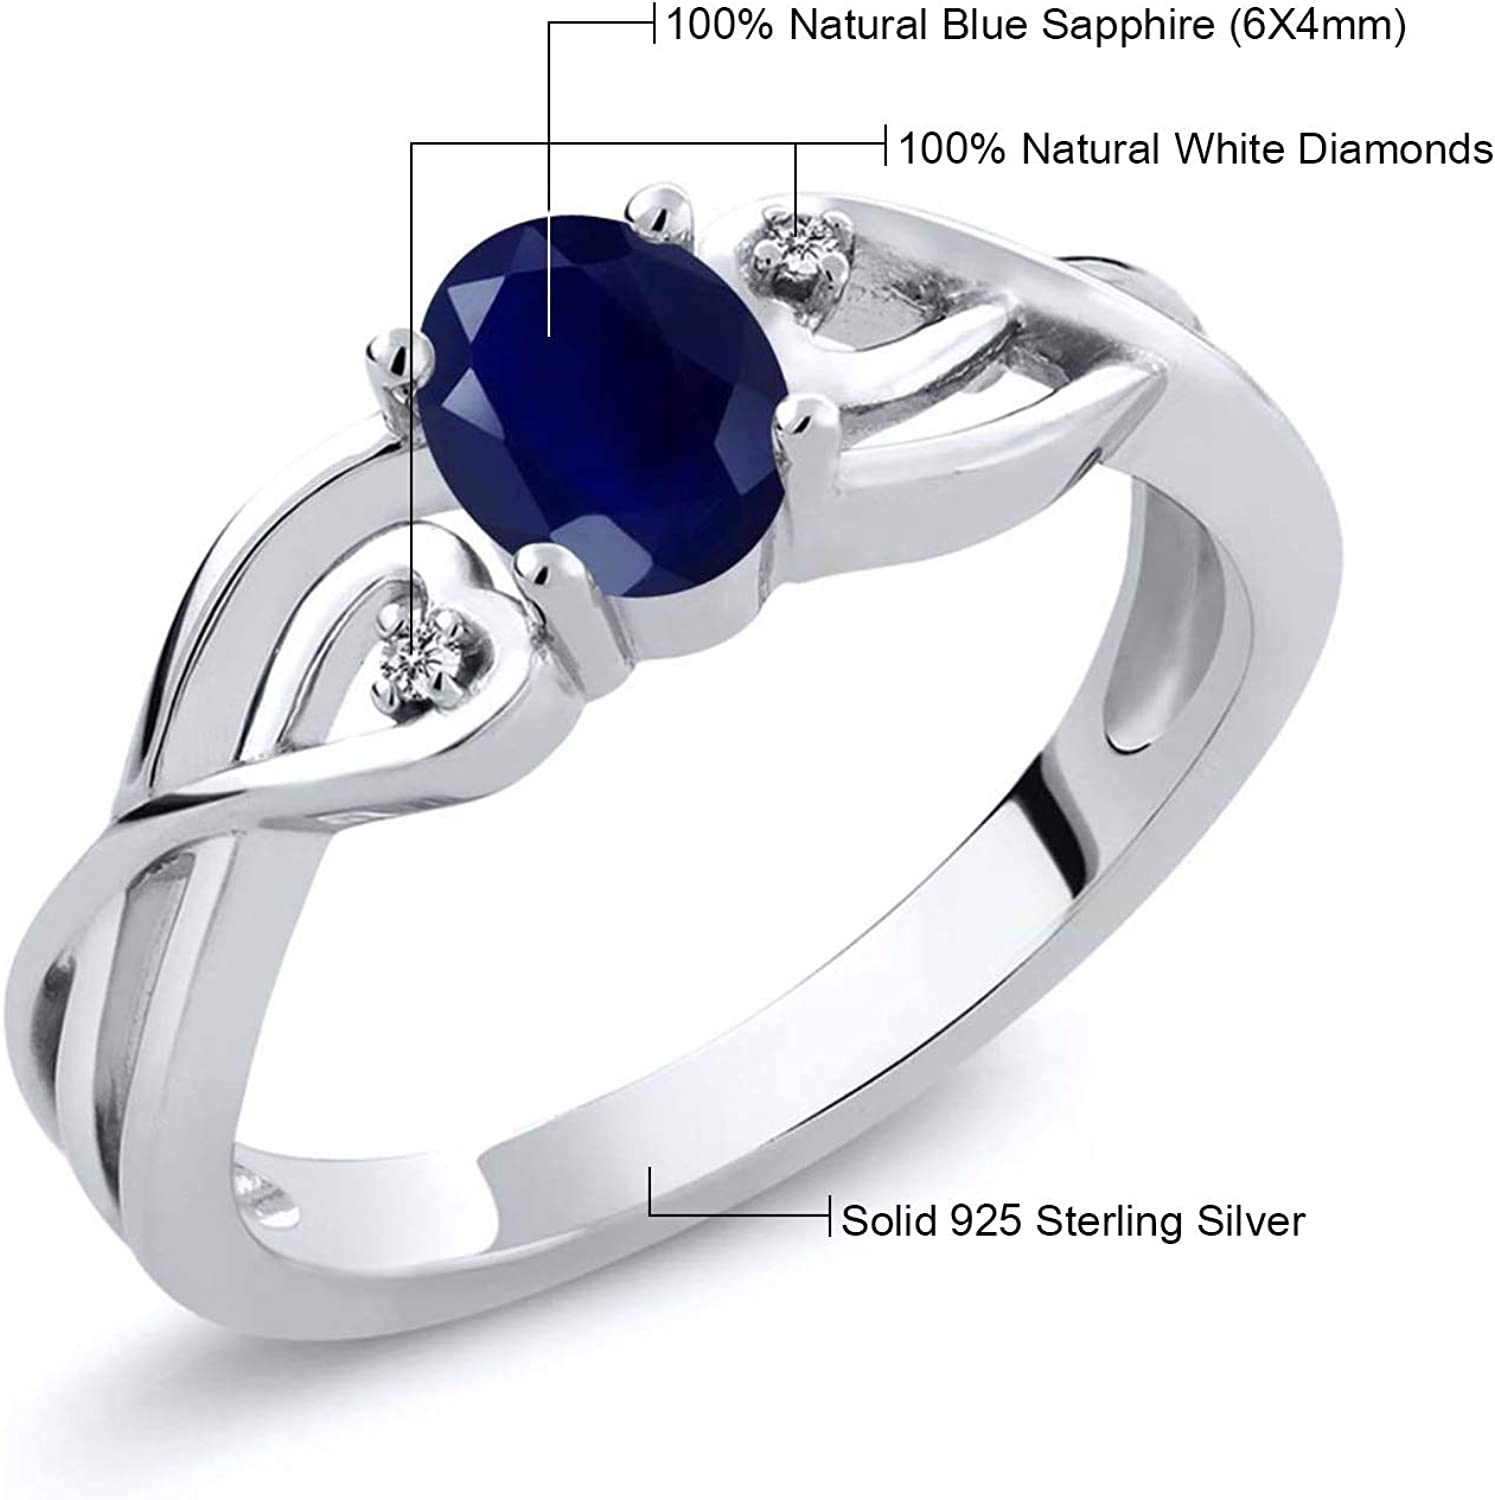 Blue Sapphire 6.25 Carat Anniversary Gift Handmade Ring For Man And Women 925 Sterling Silver